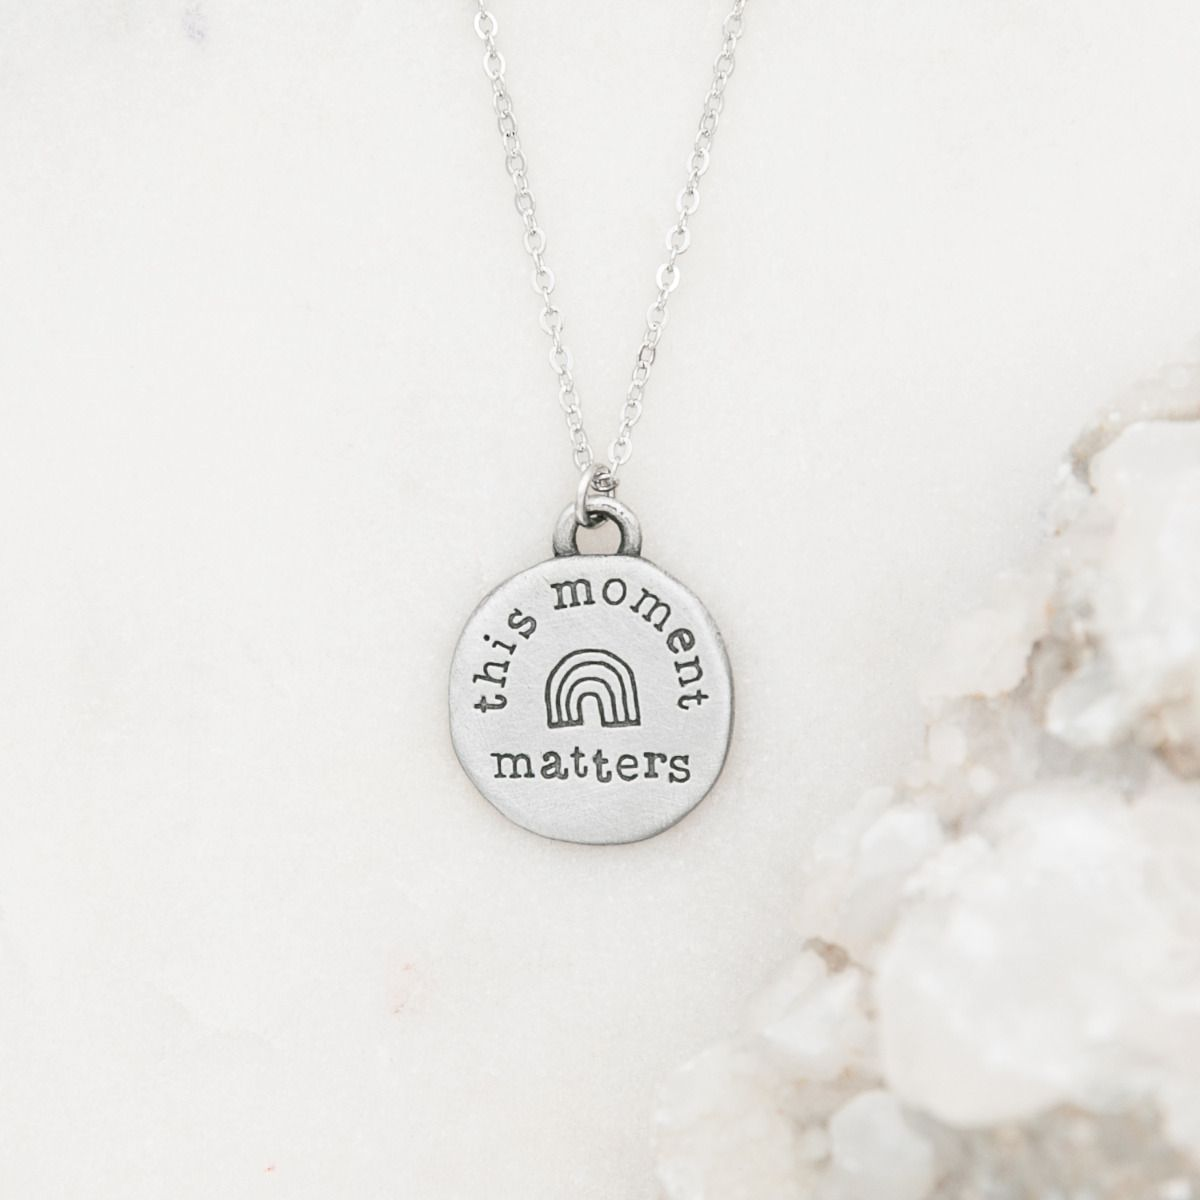 This Moment Matters Necklace [Pewter]